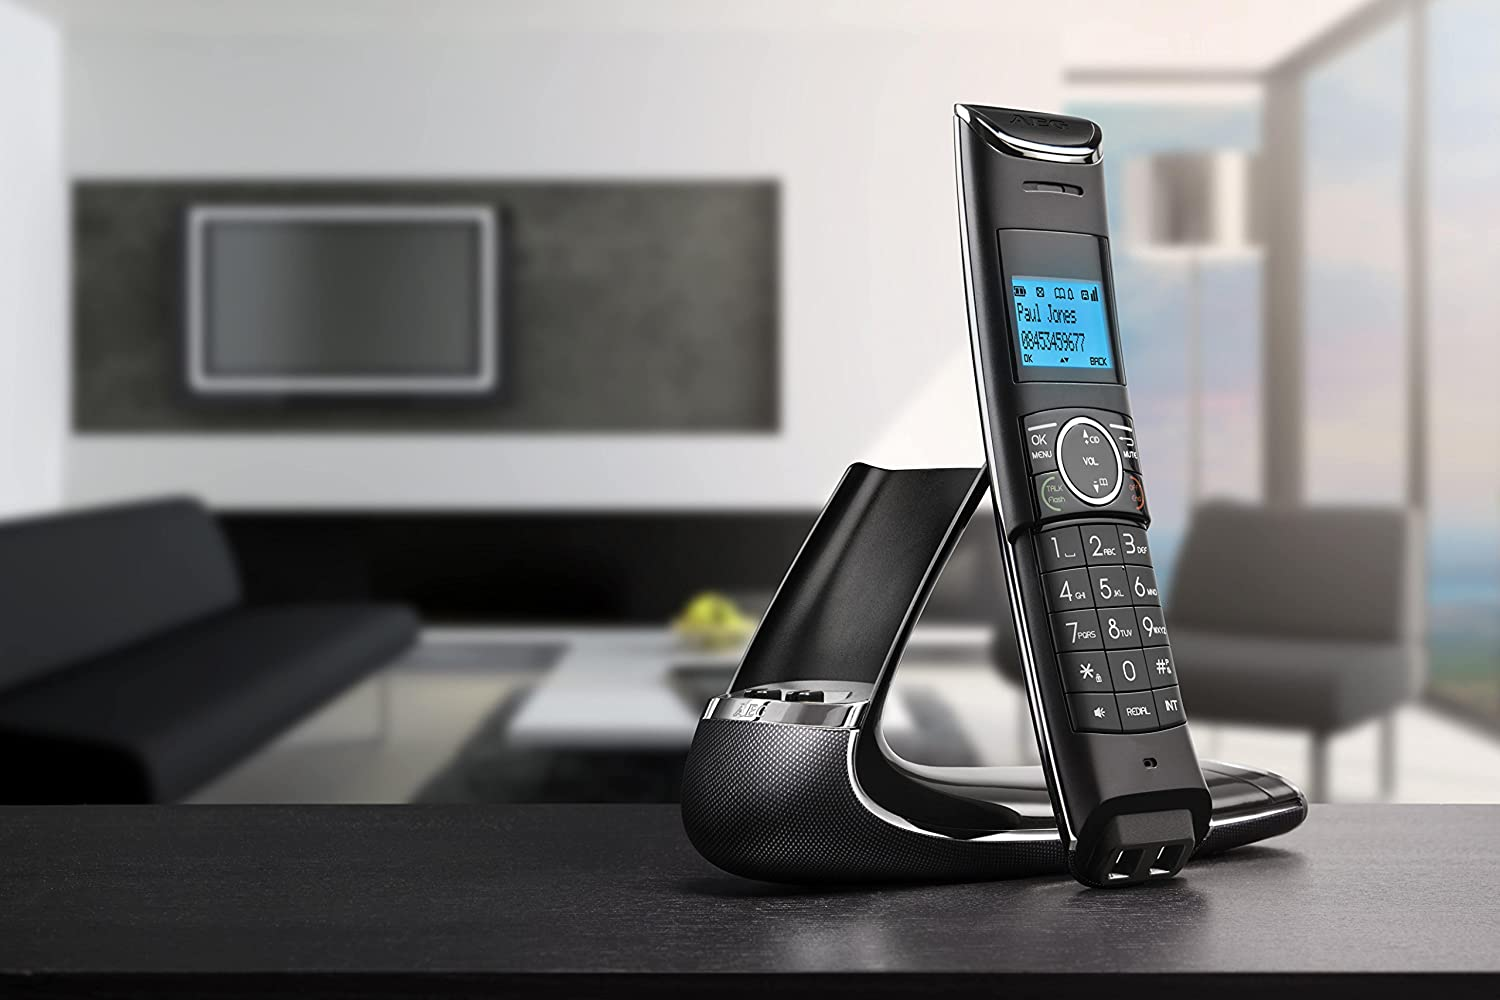 AEG Boomerang Cordless Phone Black Carbon Design Limited Edition ...